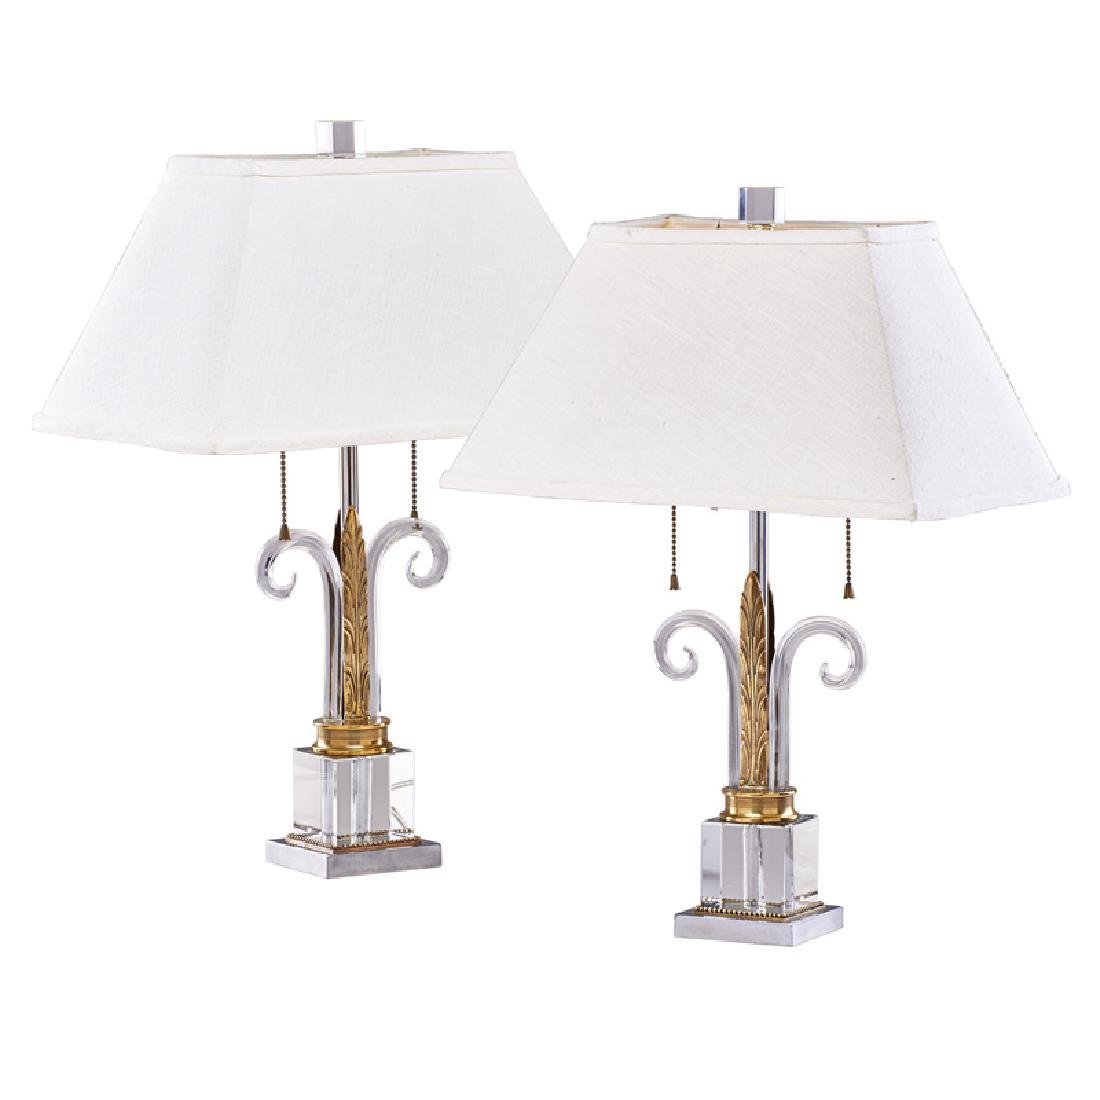 GILBERT ROHDE (Attr. Two table lamps